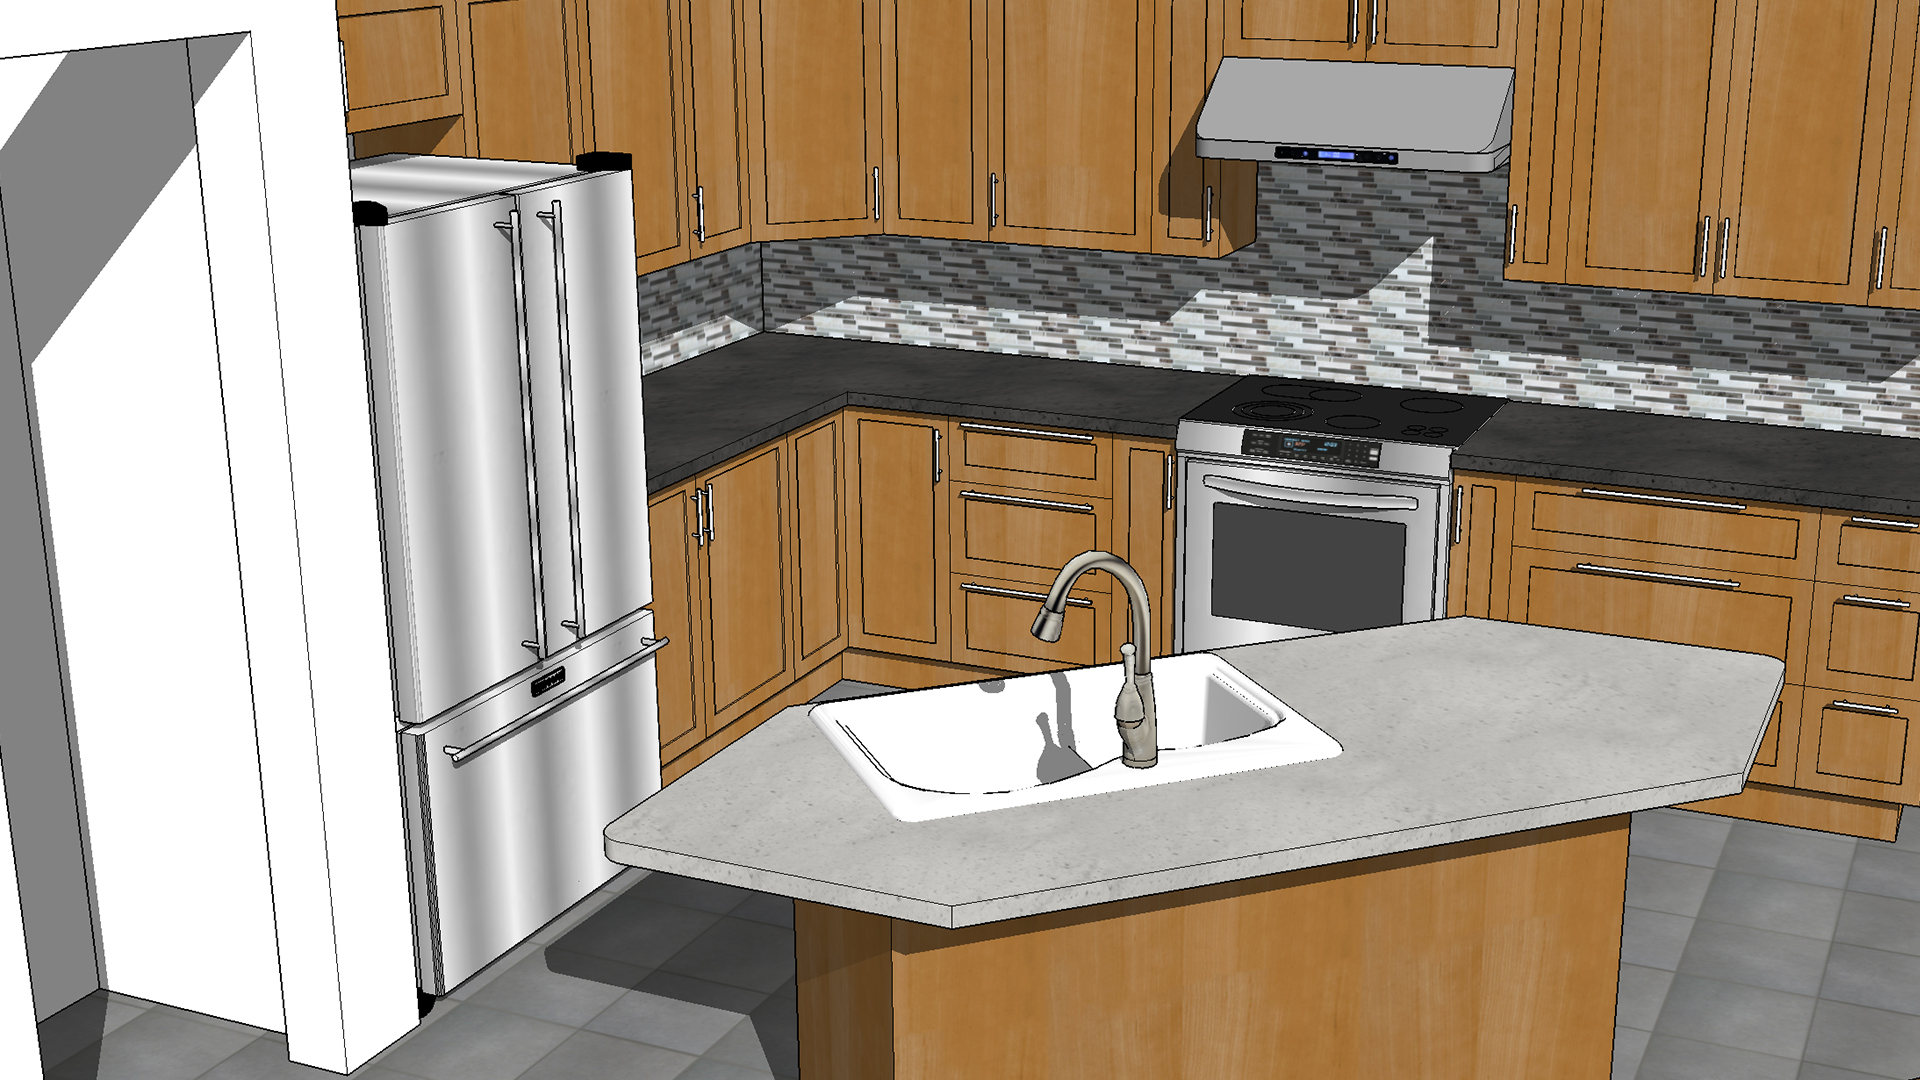 kitchen design apprenticeship sketchup kitchen design 590